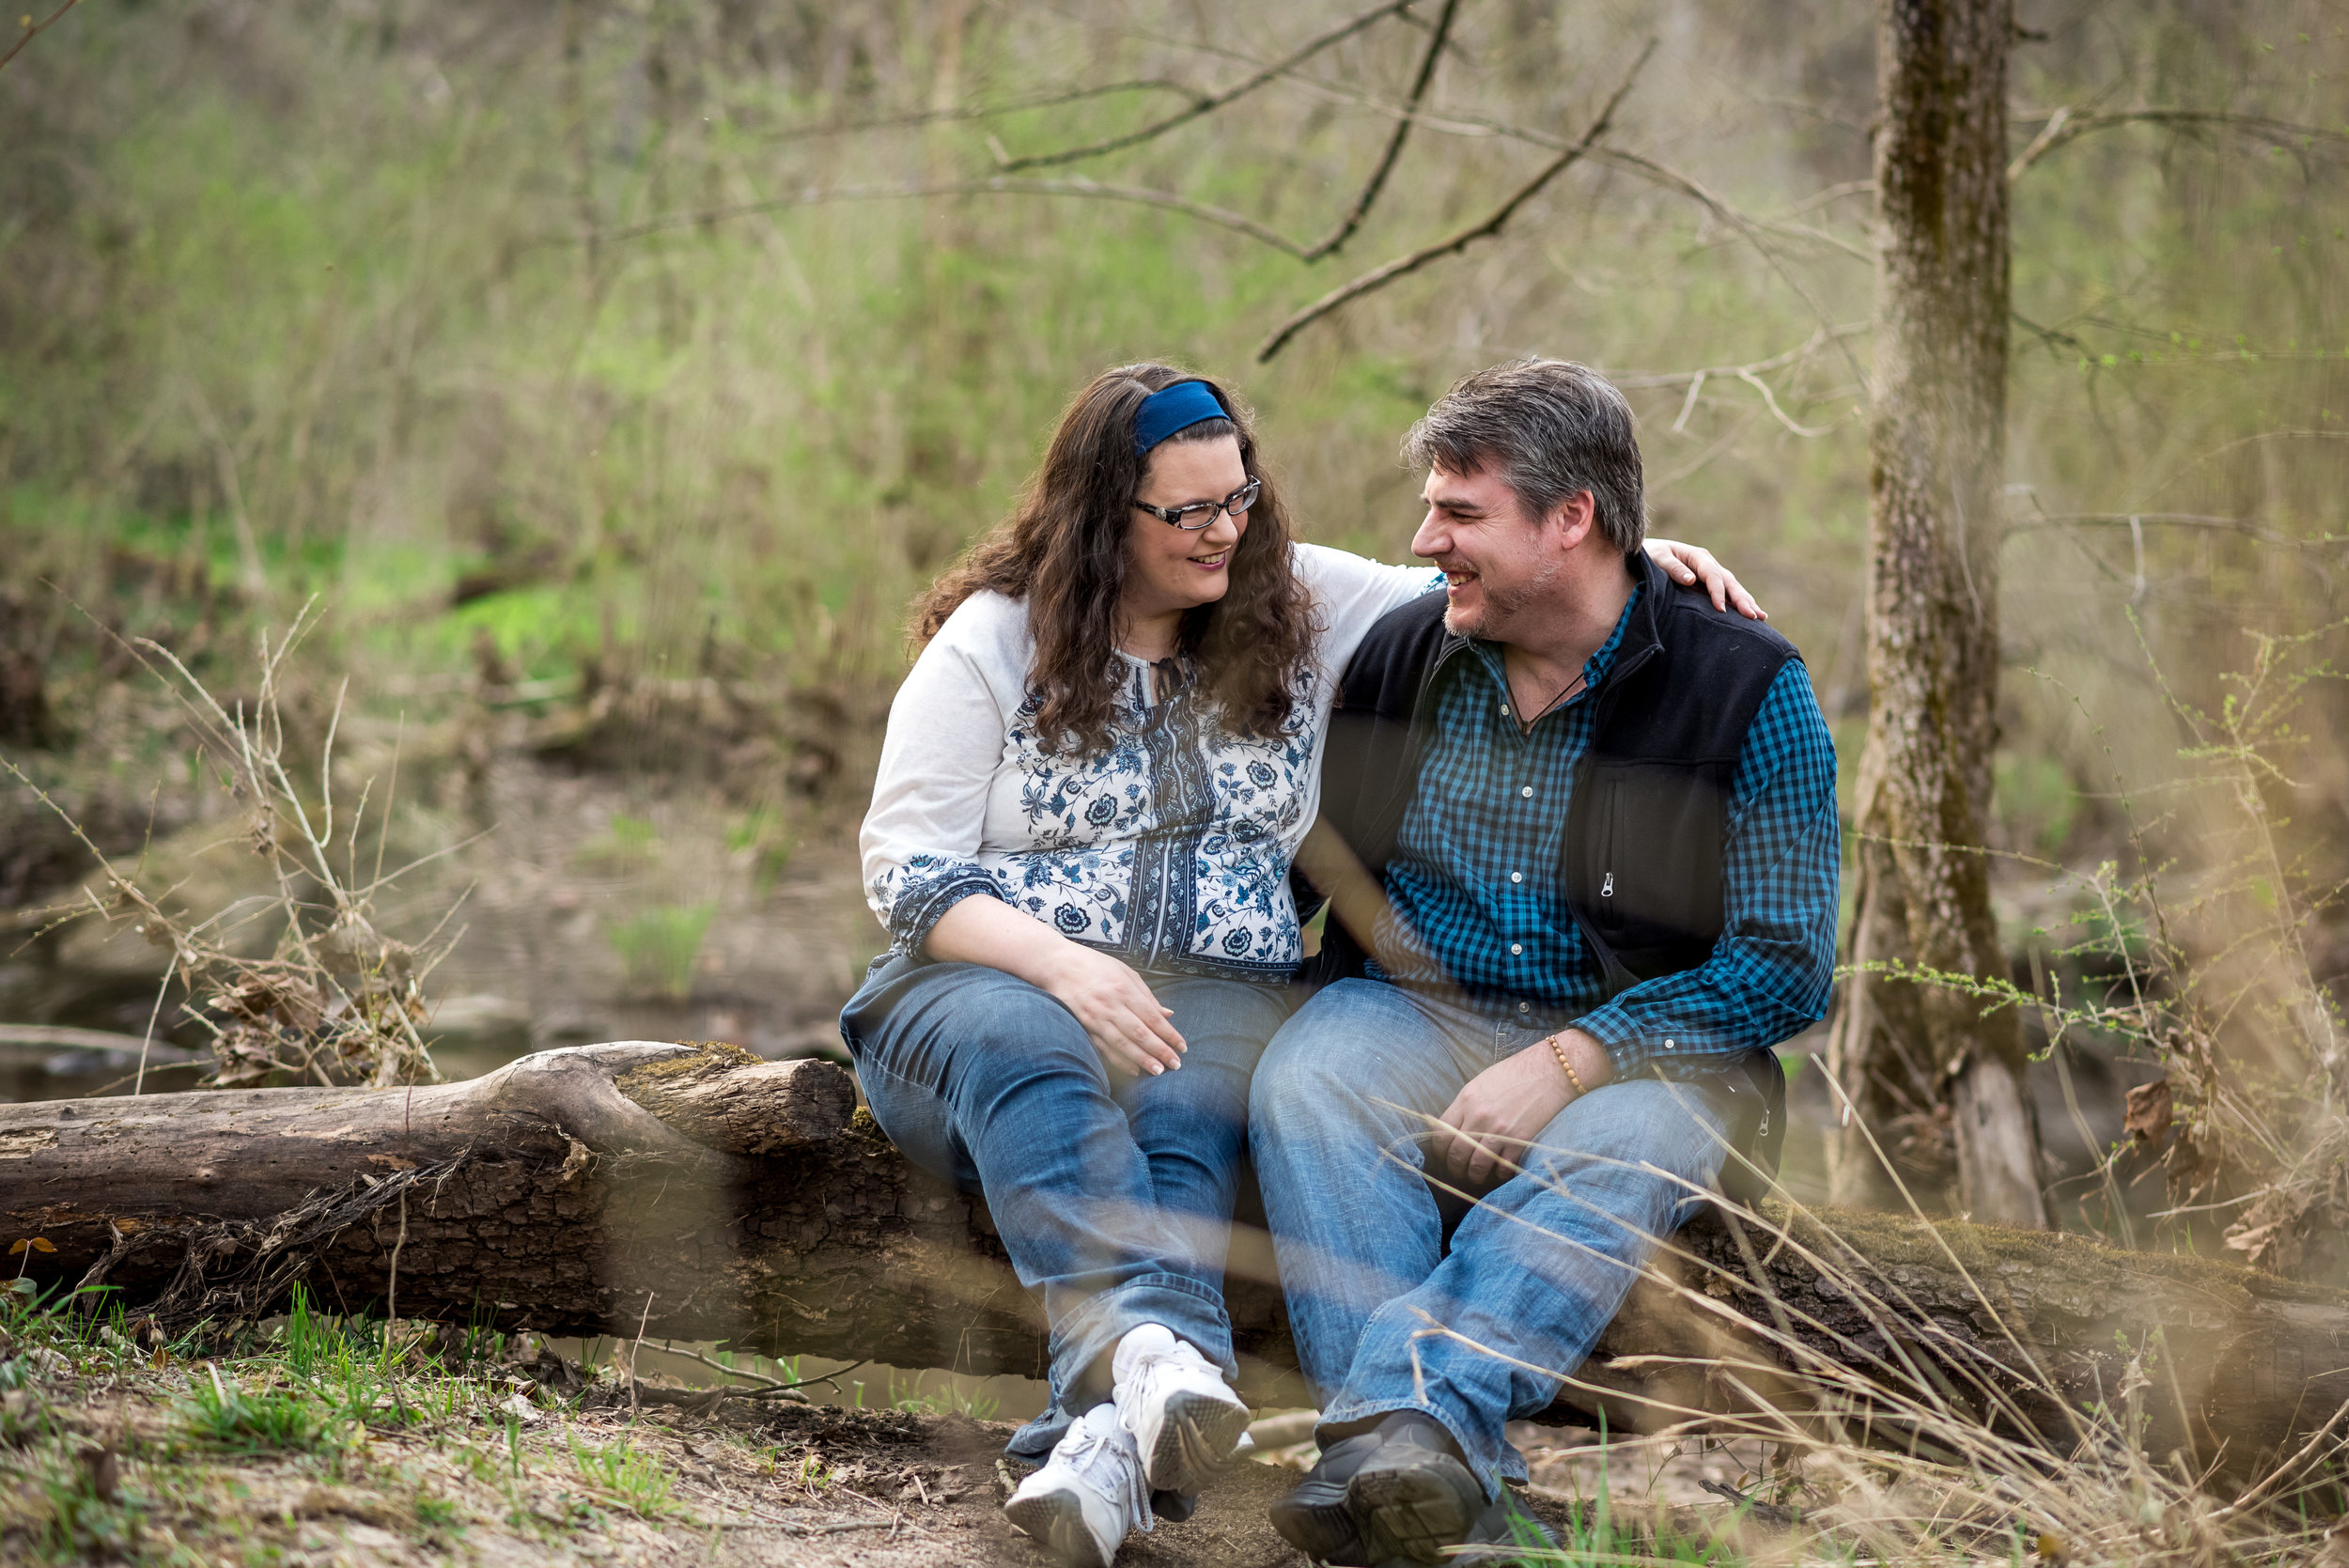 Angie-and-Evan-engagement-Glen-Helen-2018-sp-1.jpg